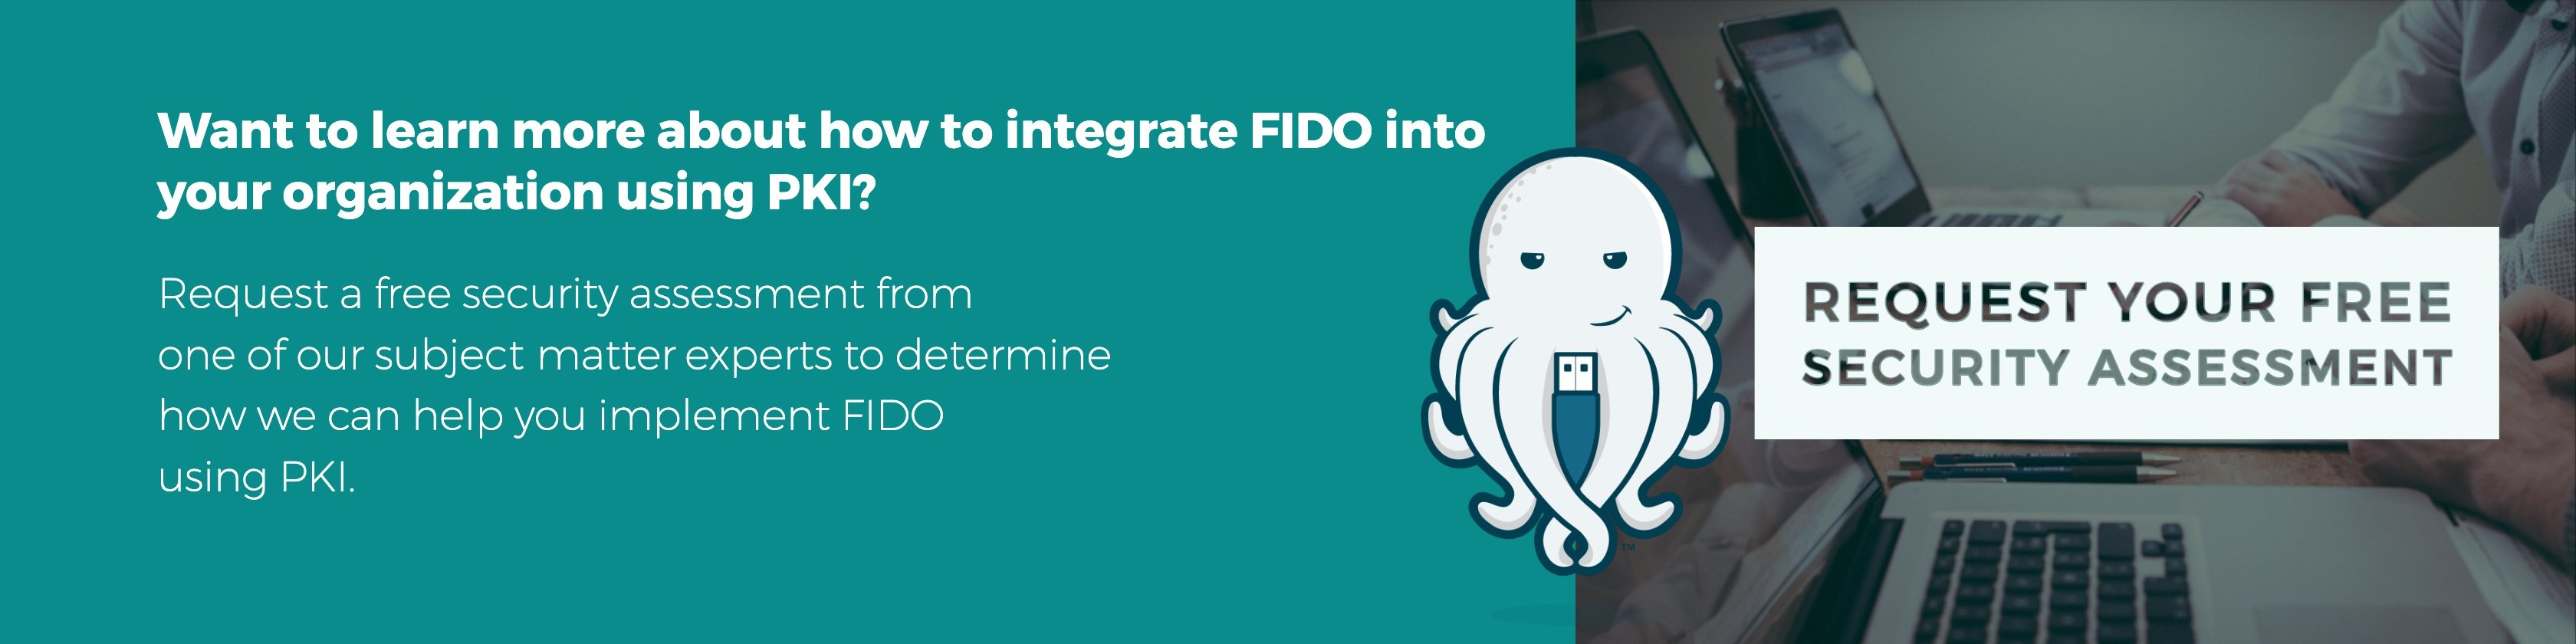 Click here to learn more about how to integrate FIDO into your organization using PKI.